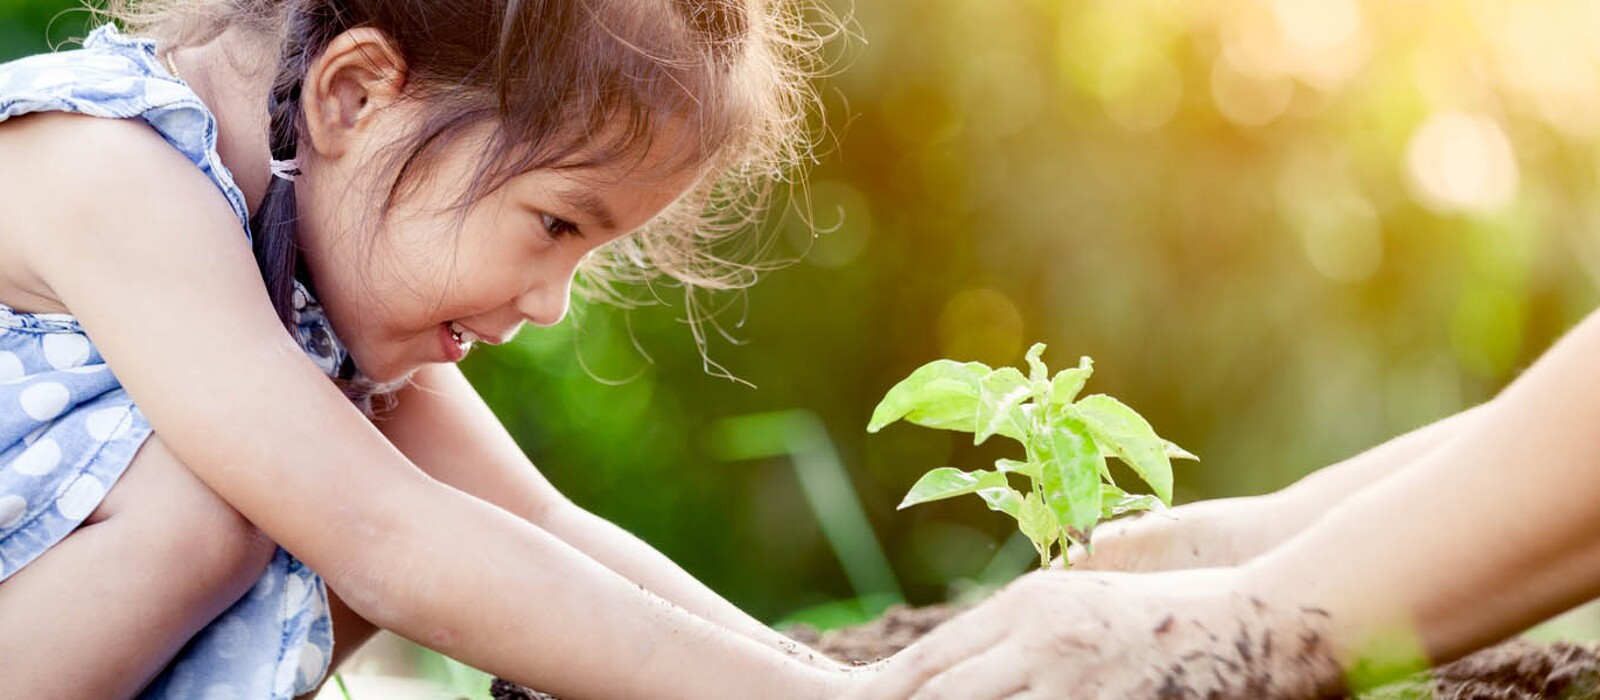 How to Raise Kids to Care About the Environment